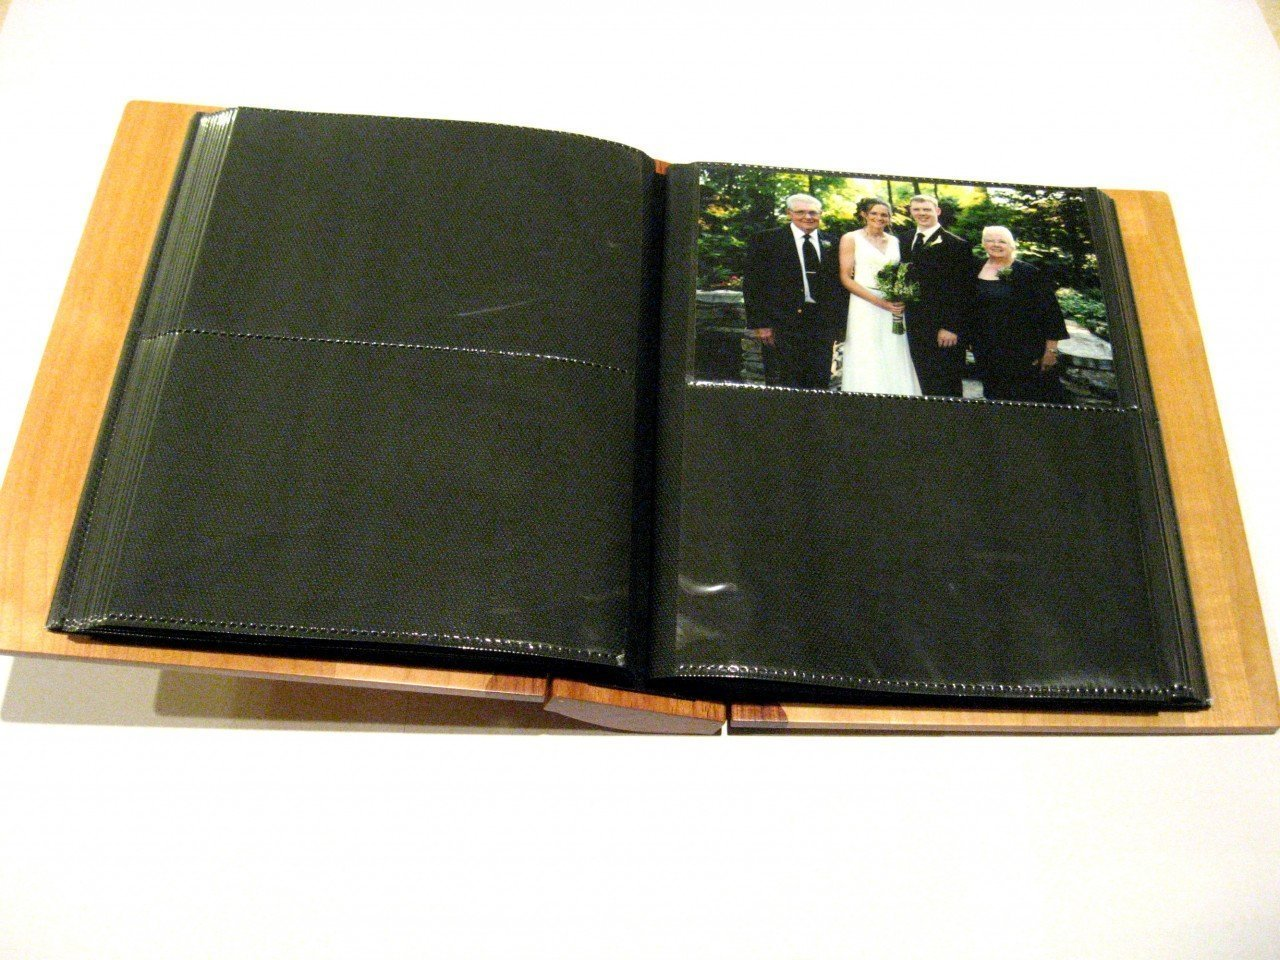 Engraved Wood Personalized Photo Album ''Hunting Memories'' - Large by Whitetail Woodcrafters (Image #8)